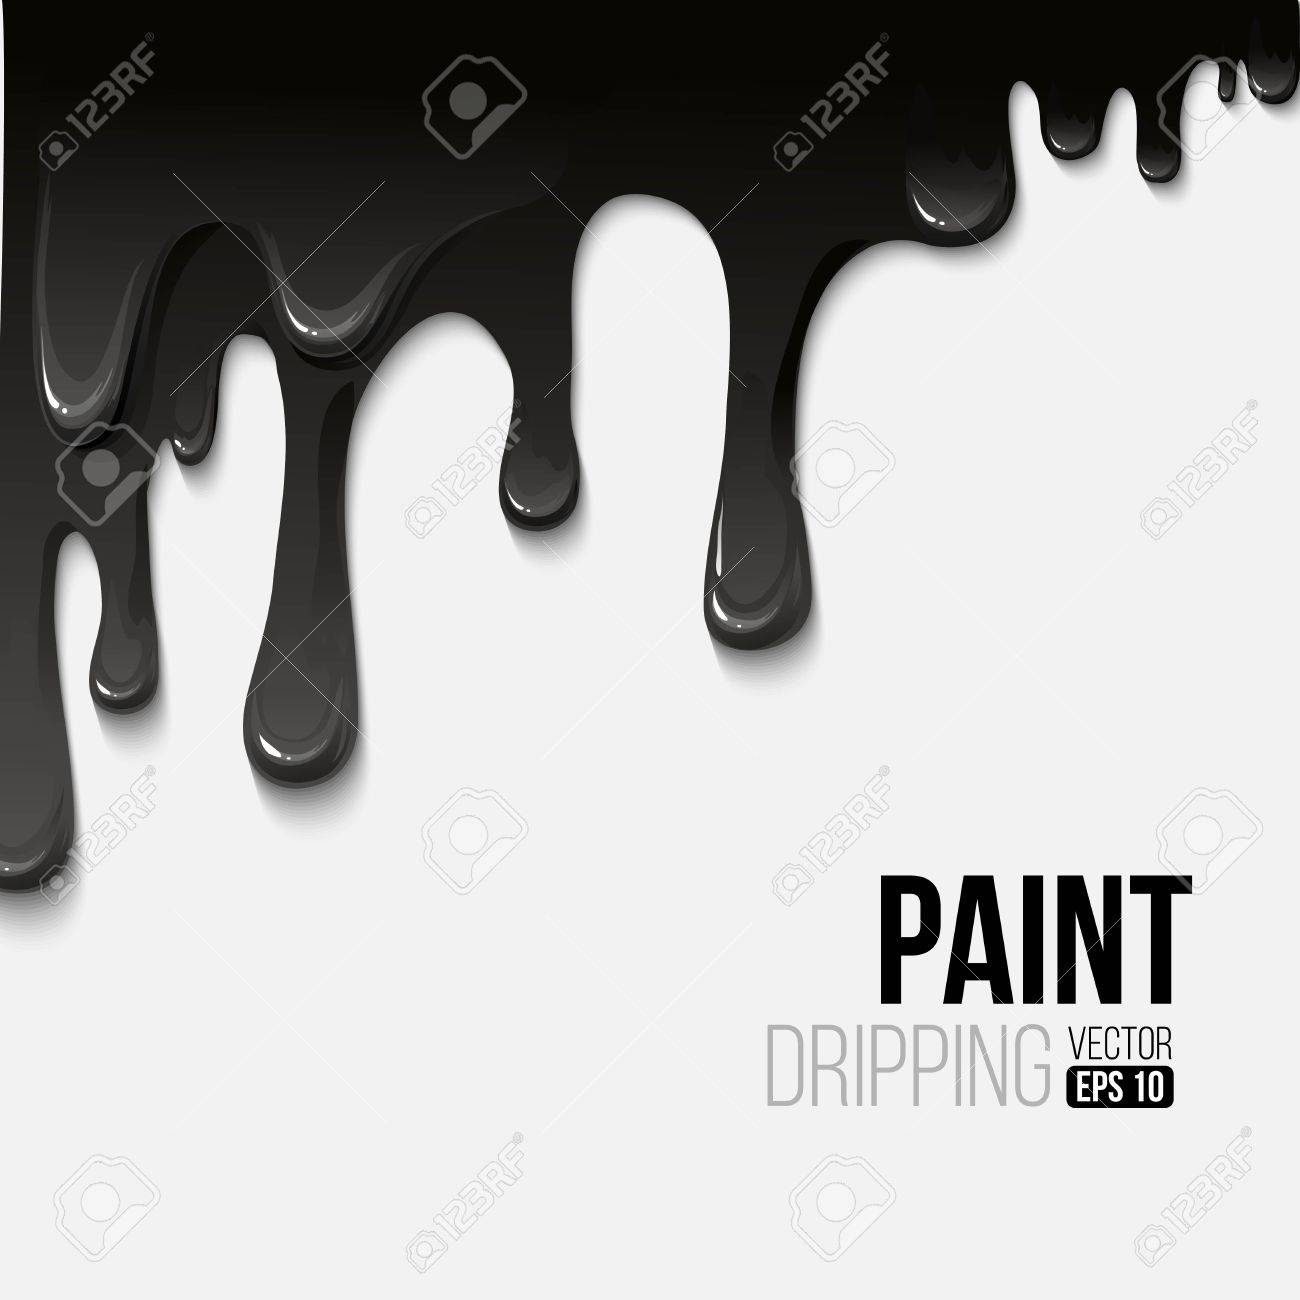 Paint colorful dripping background, vector illustration - 40862870